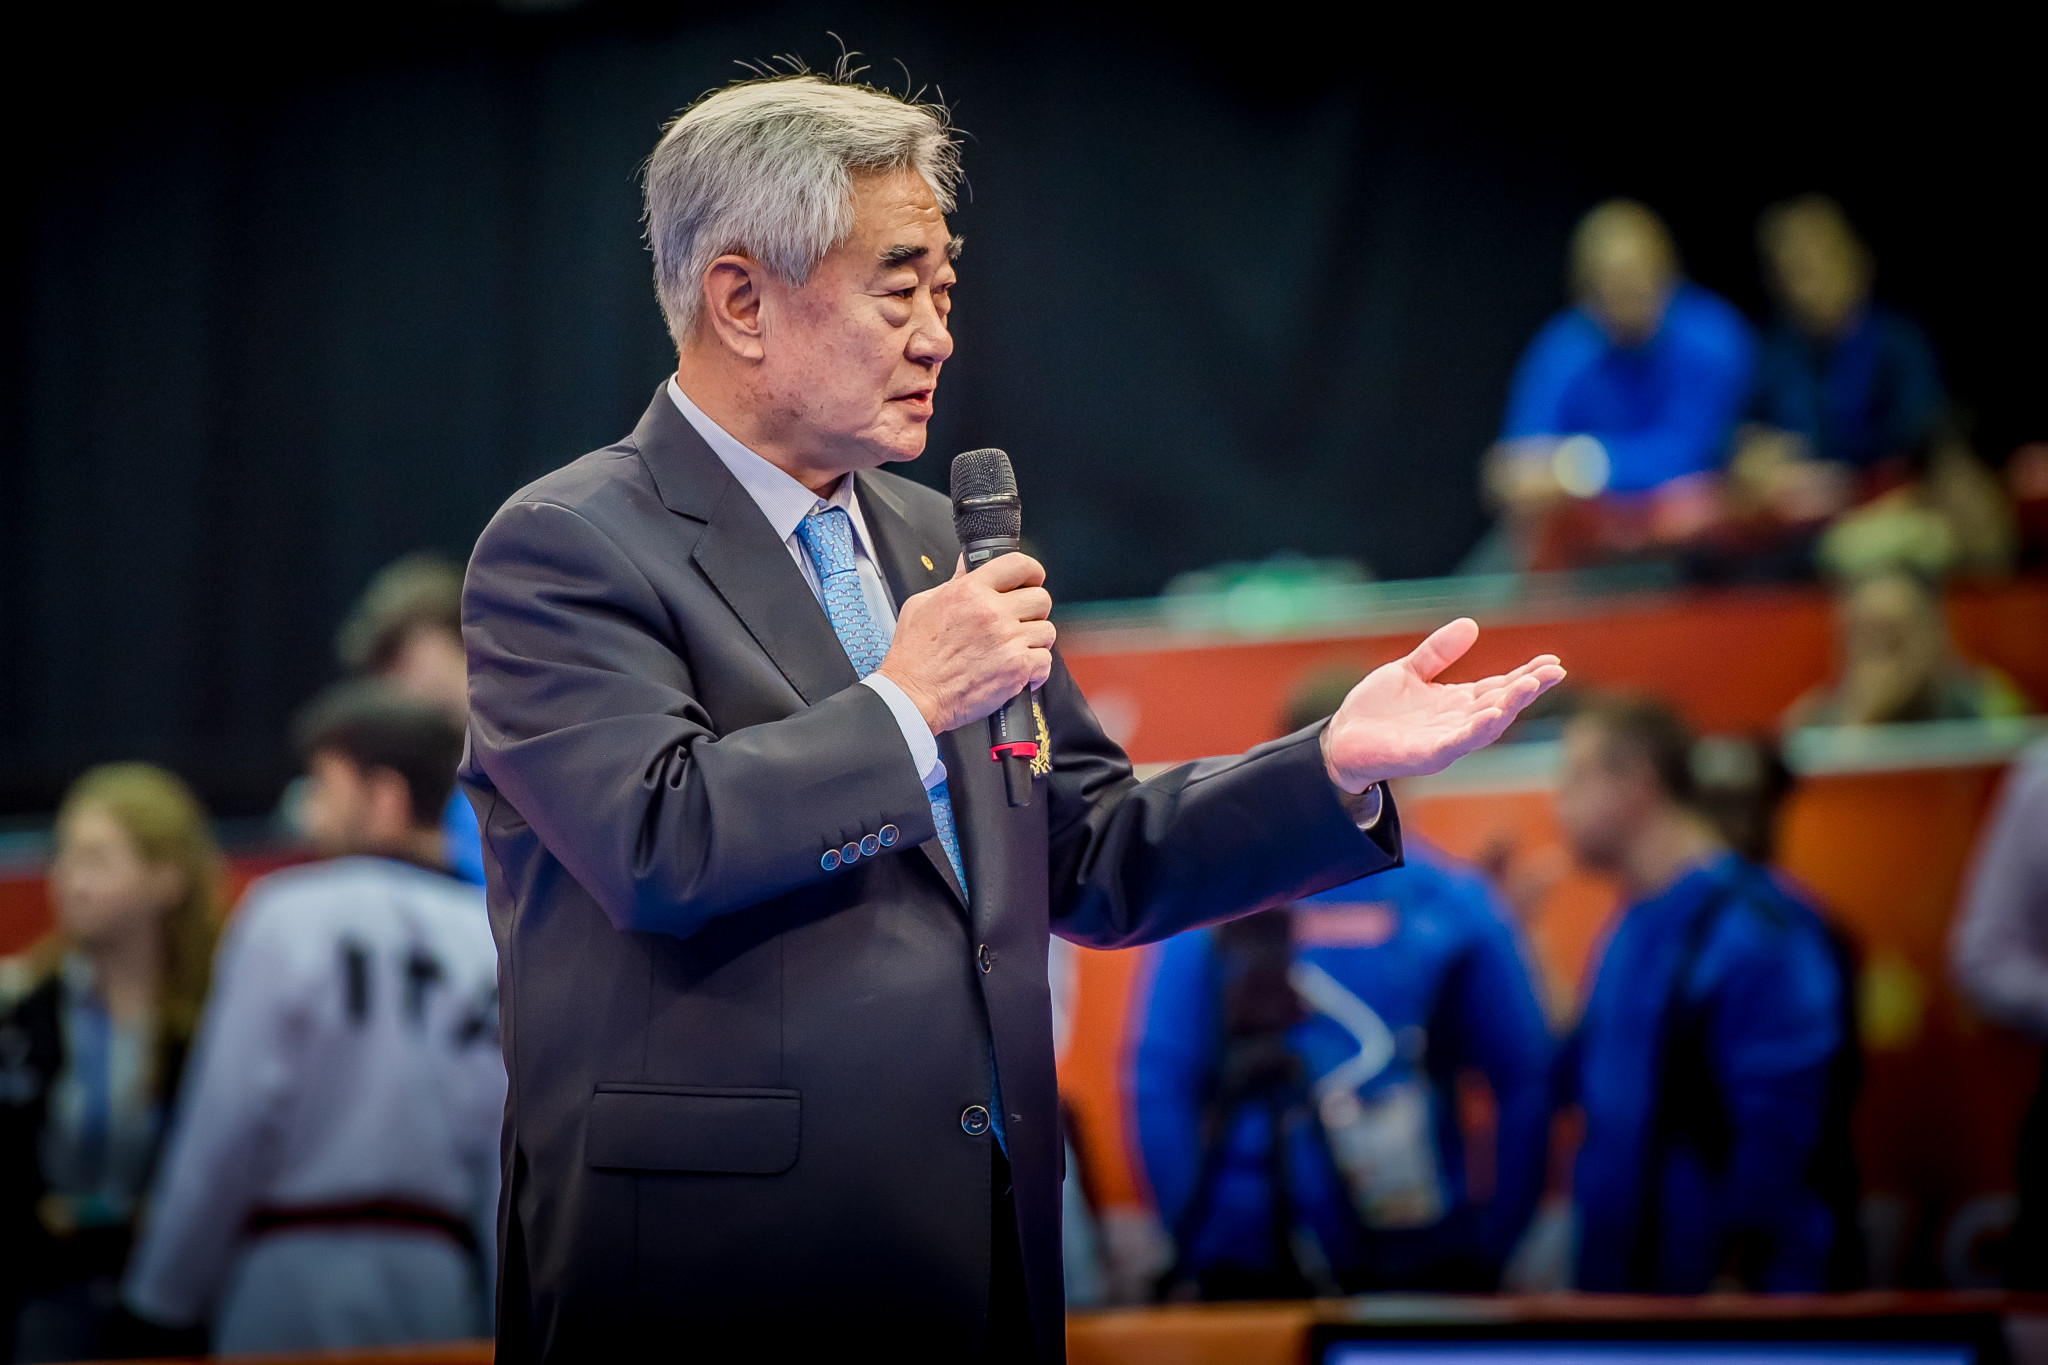 World Taekwondo President confident London will deliver top-class Grand Prix